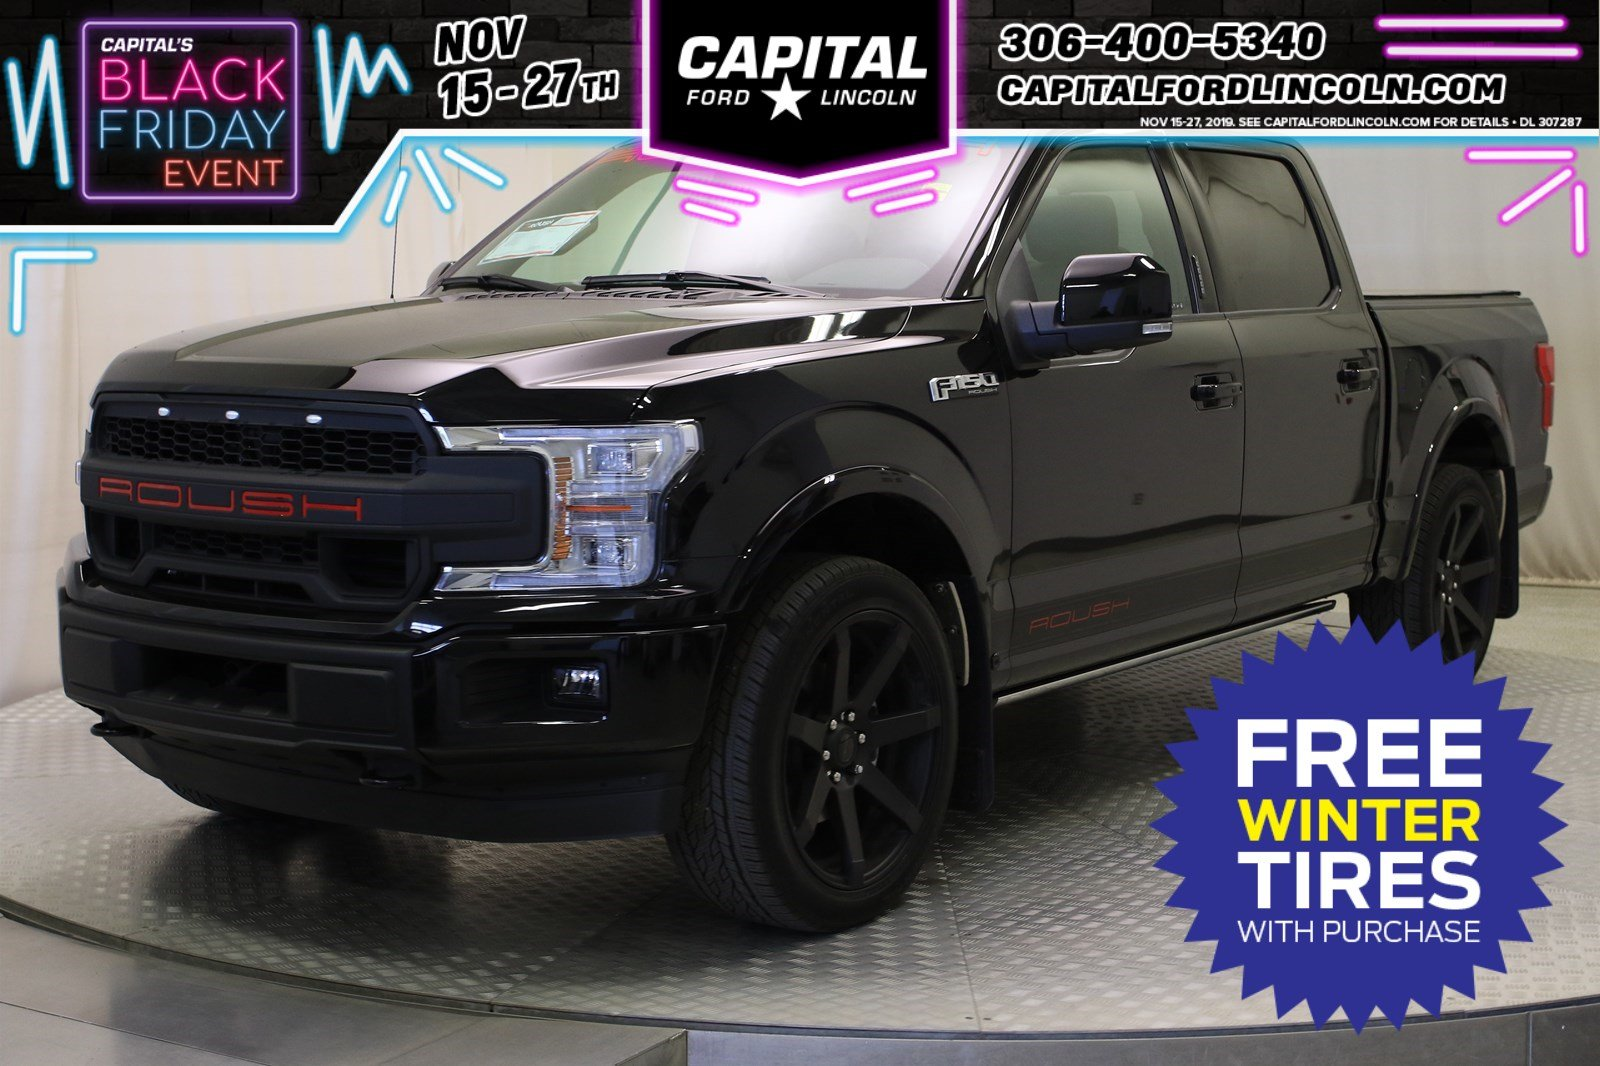 New 2019 Ford F-150 LARIAT *ROUSH SPORT PACKAGE W/ SUPERCHARGER*